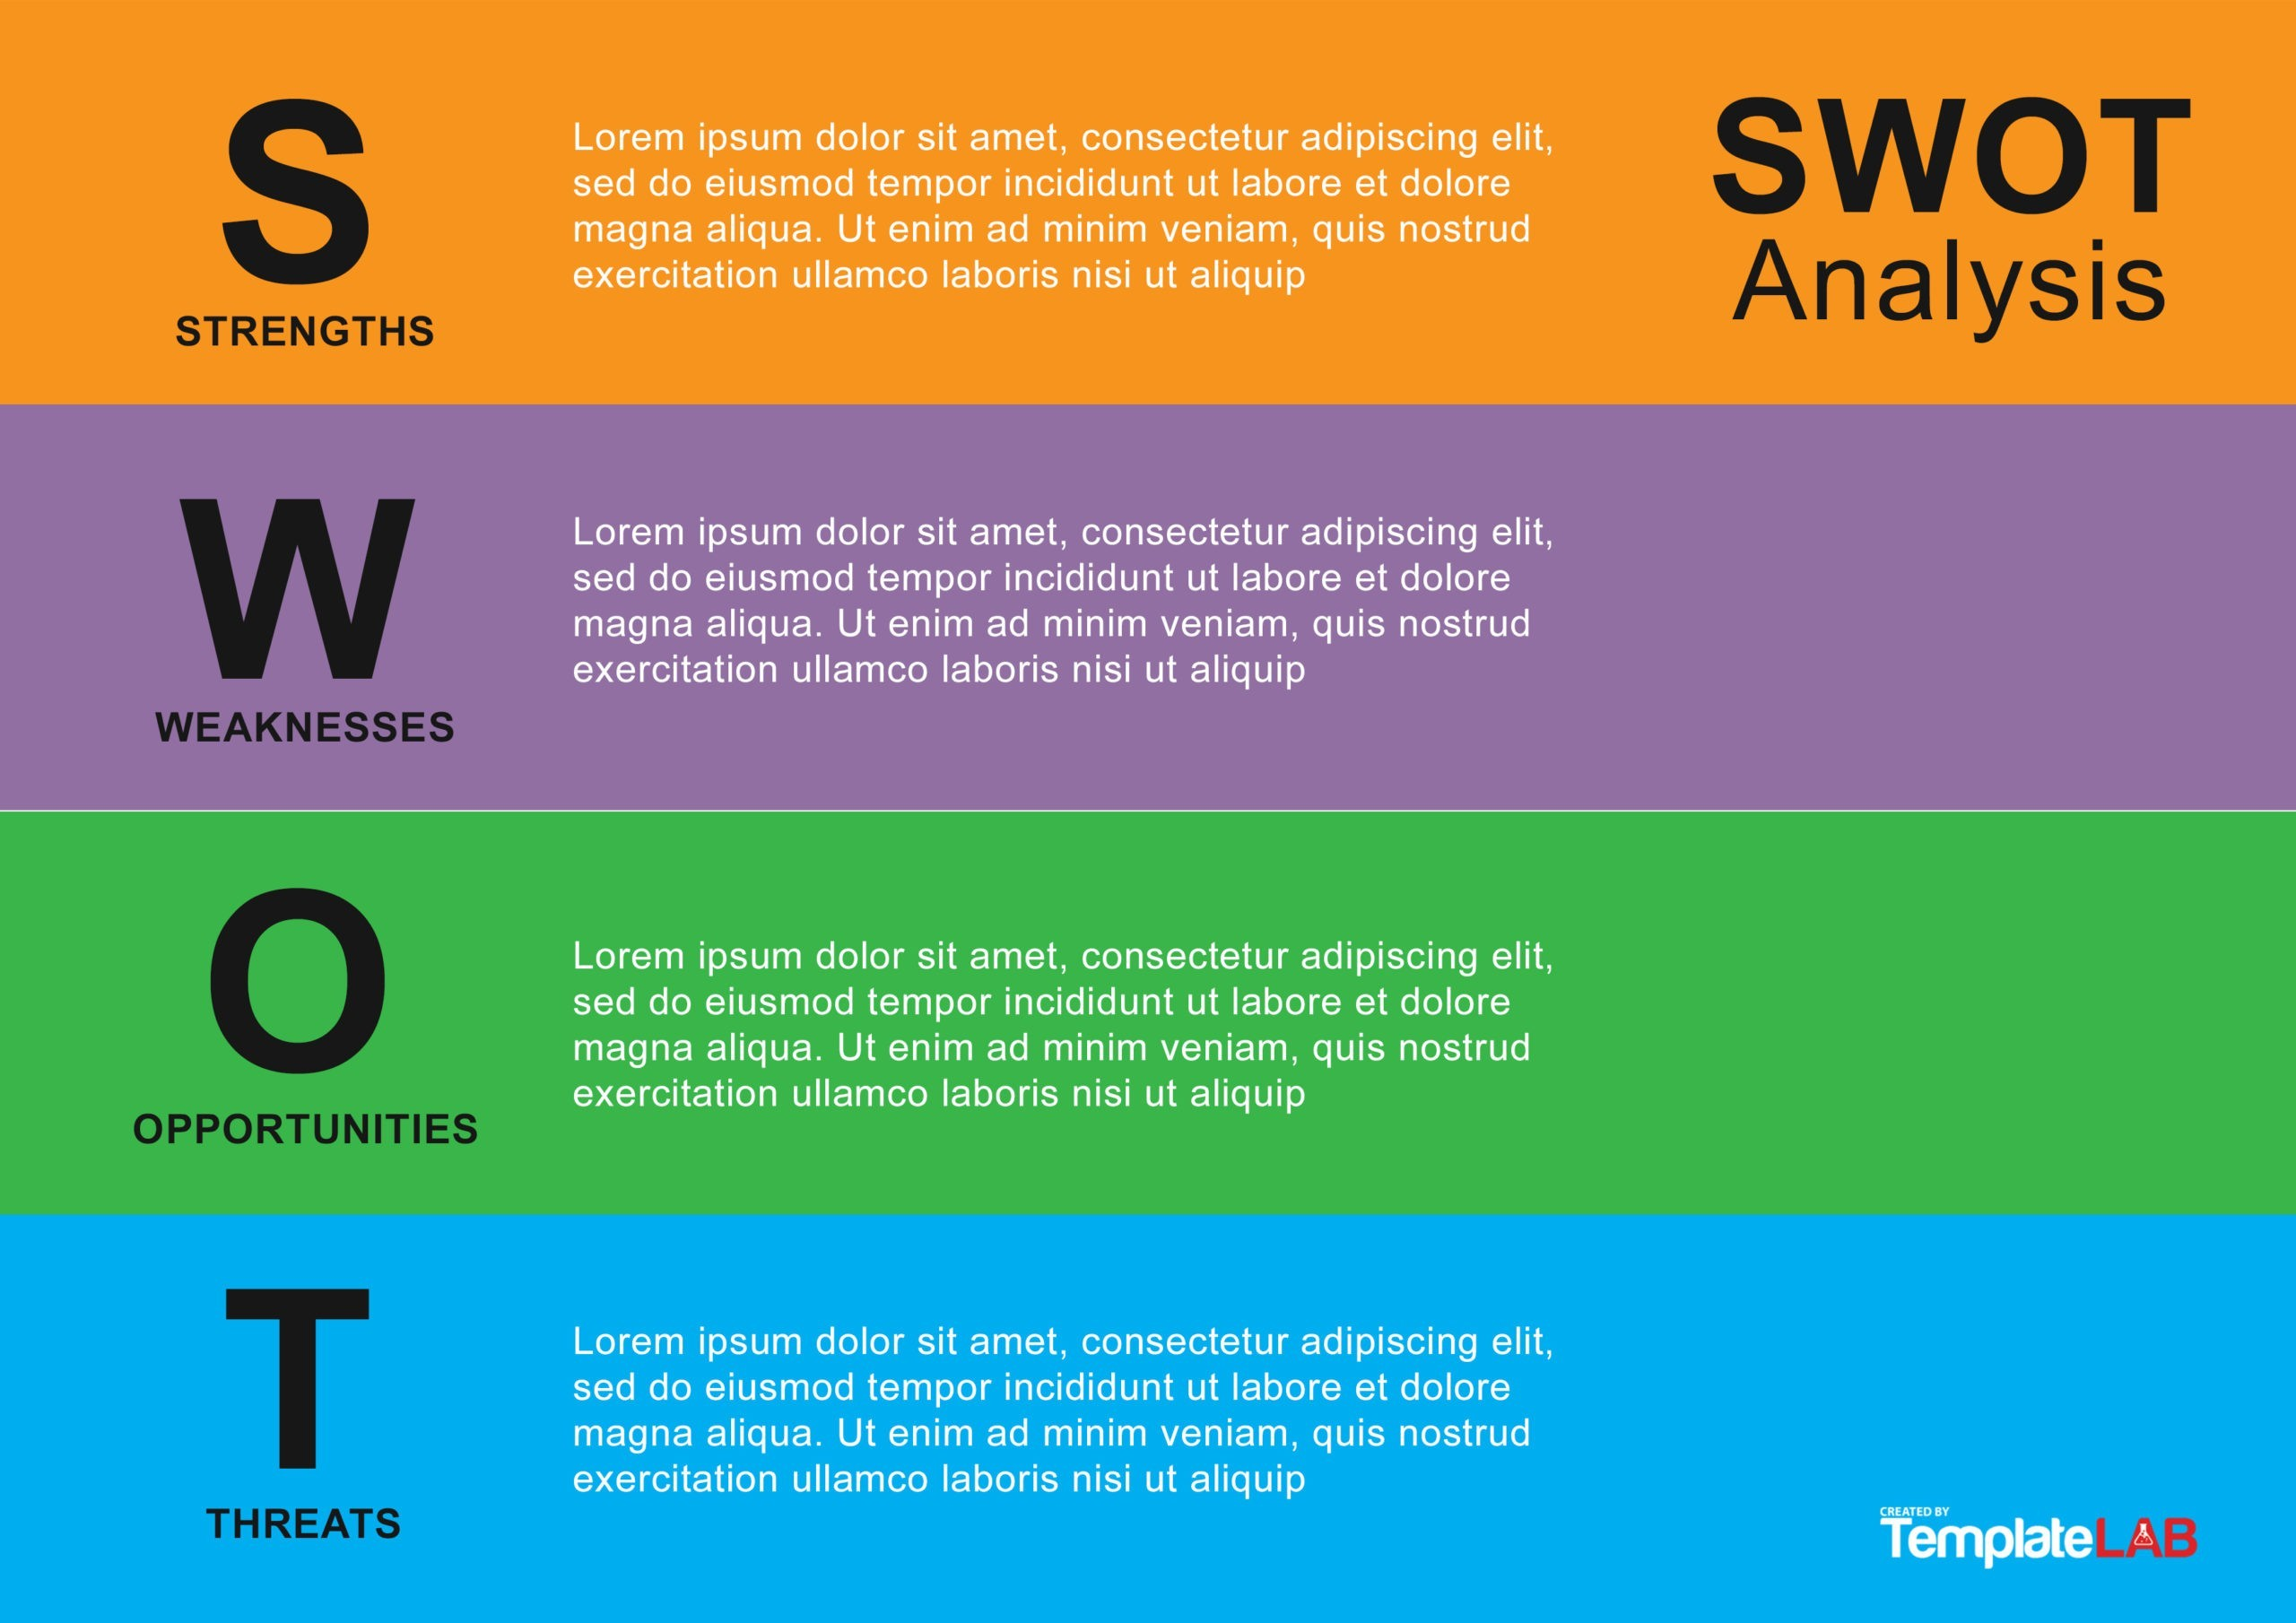 Personal Swot Analysis Template from templatelab.com